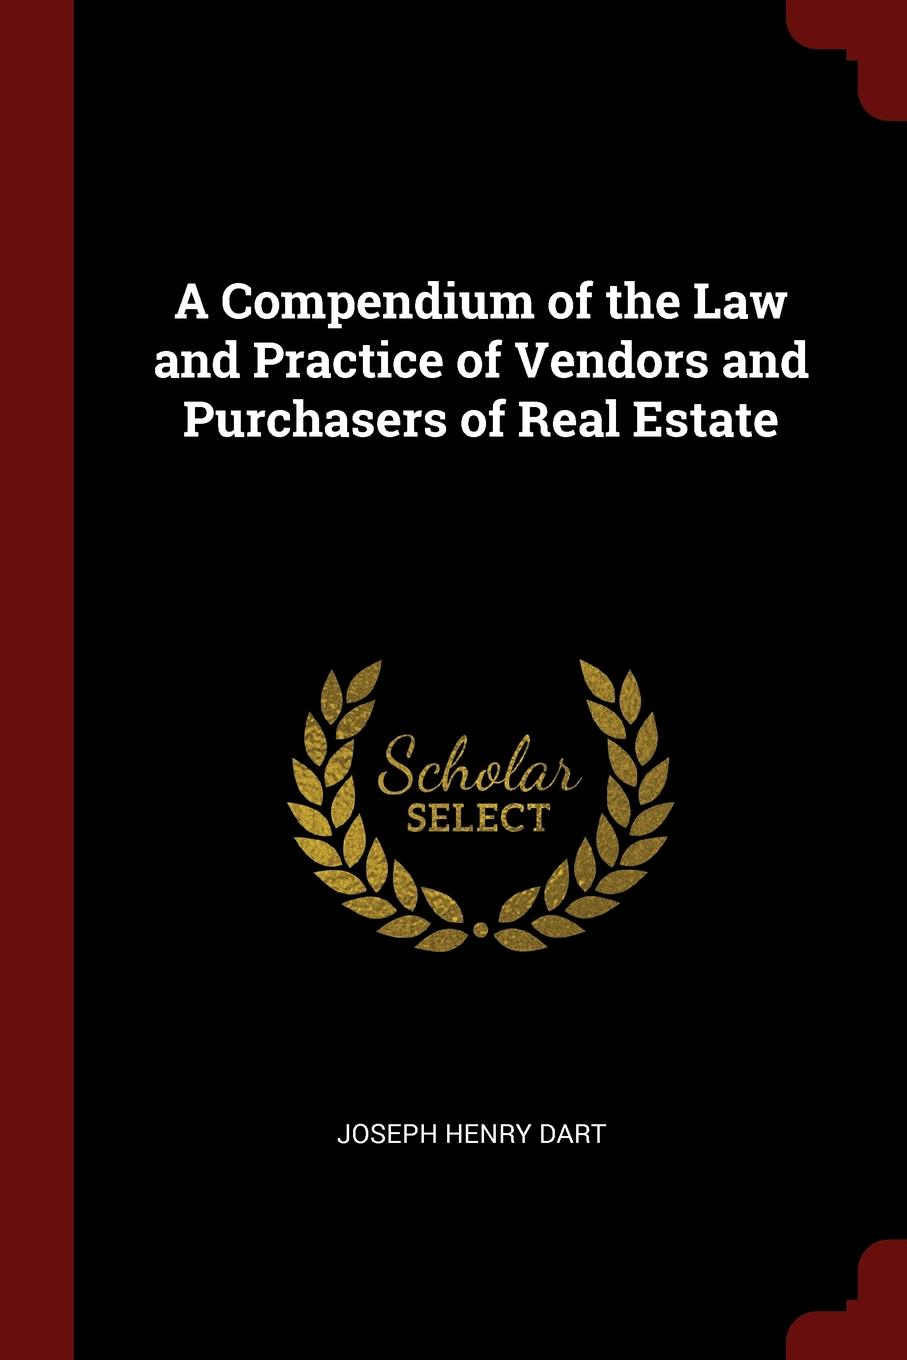 Joseph Henry Dart A Compendium of the Law and Practice Vendors Purchasers Real Estate